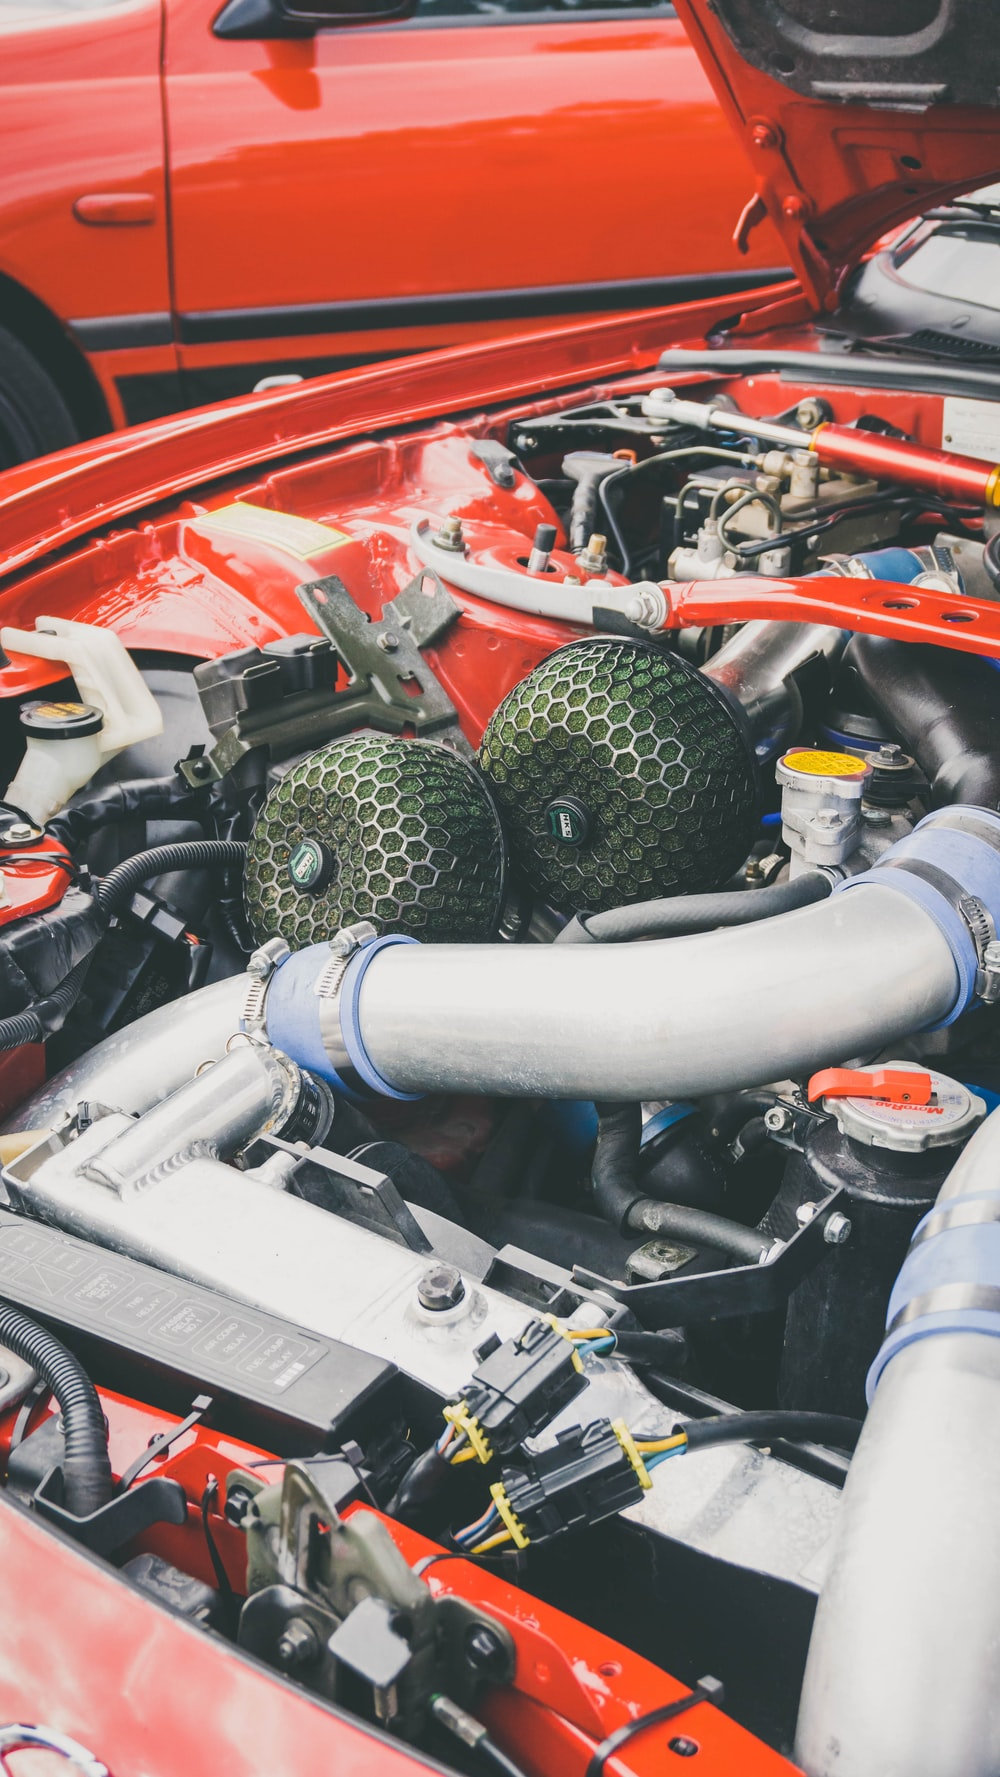 red and gray car engine